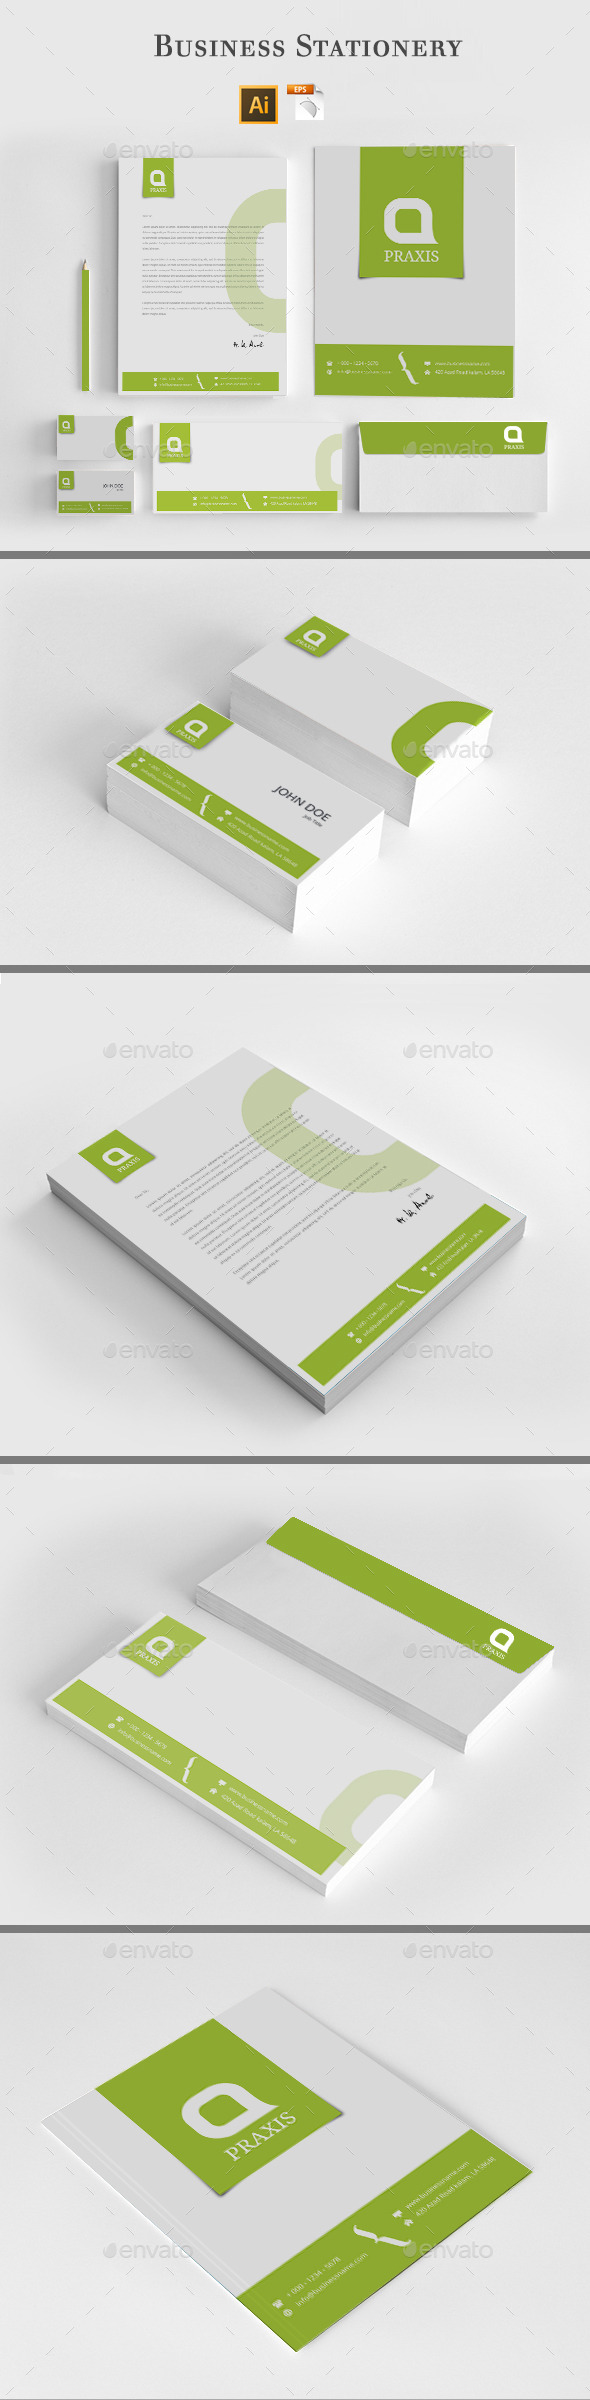 GraphicRiver Business Stationery 8804791